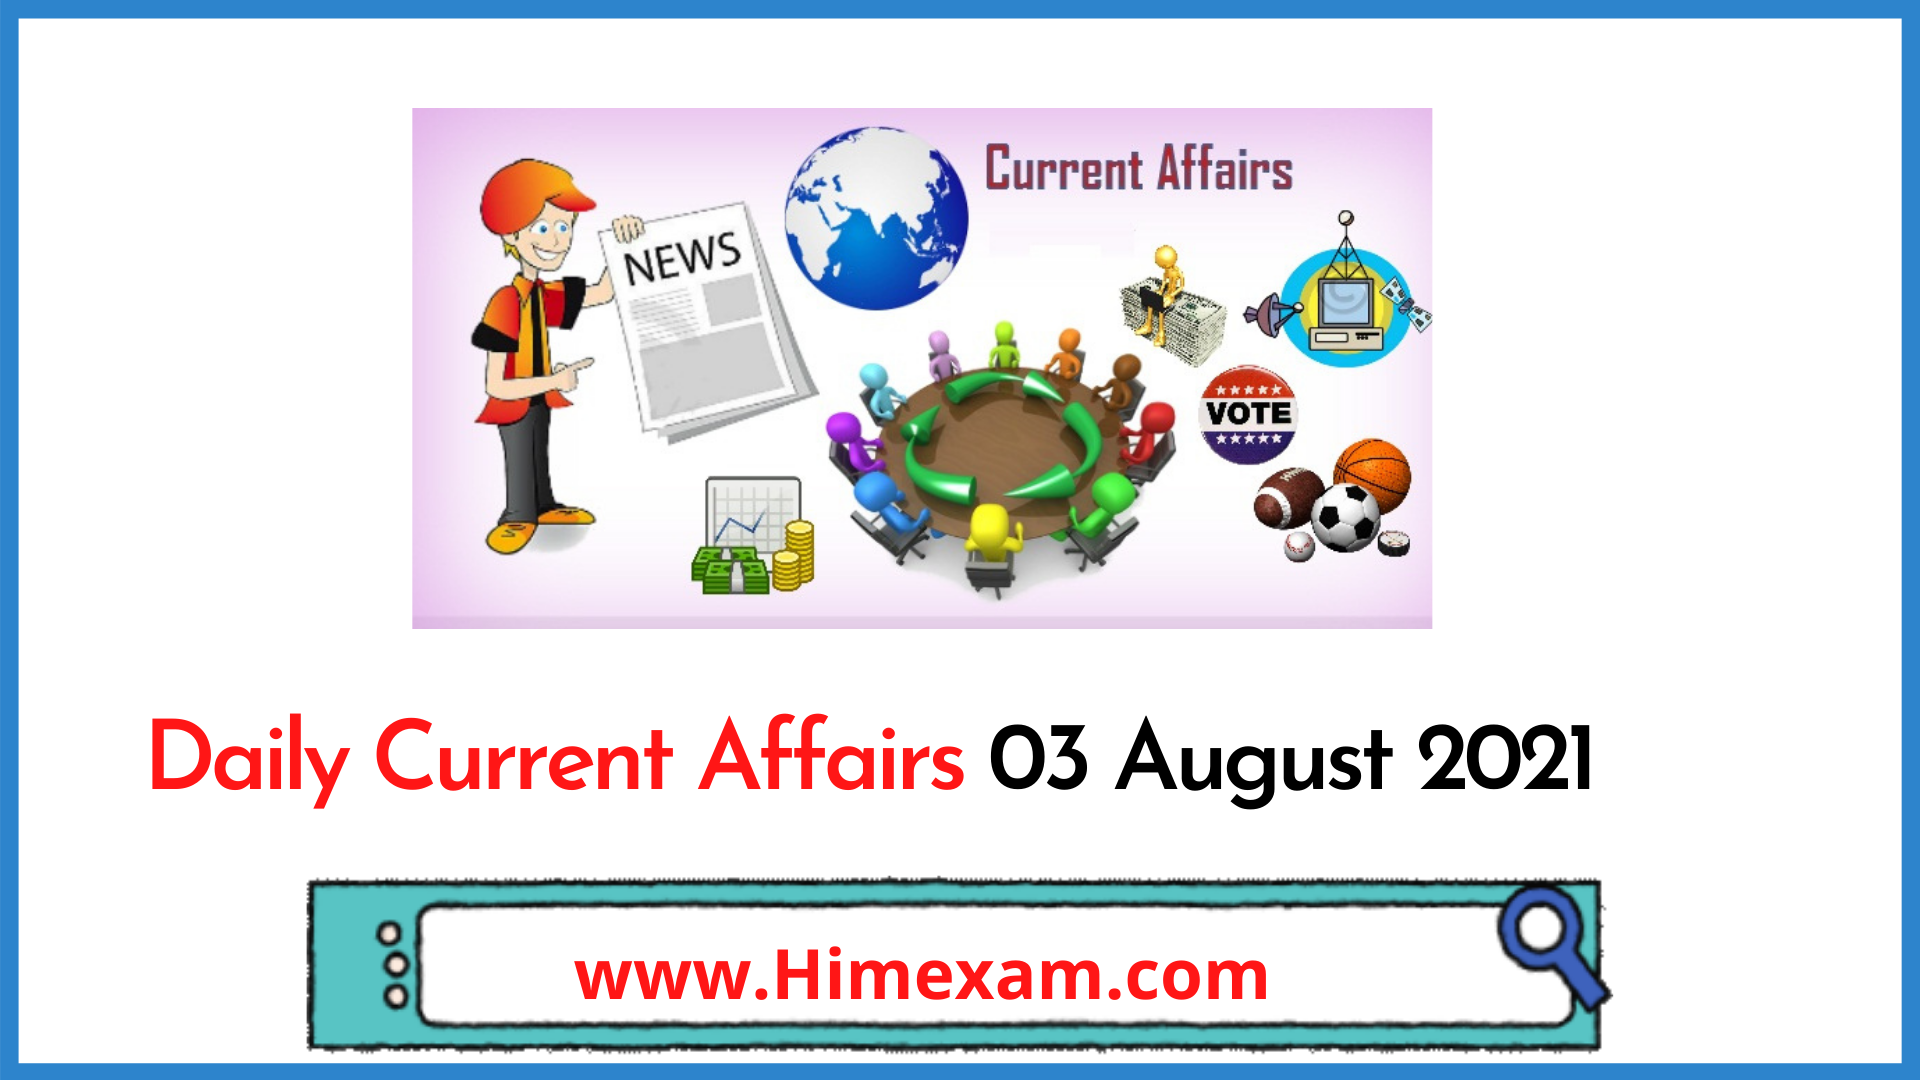 Daily Current Affairs 03 August 2021